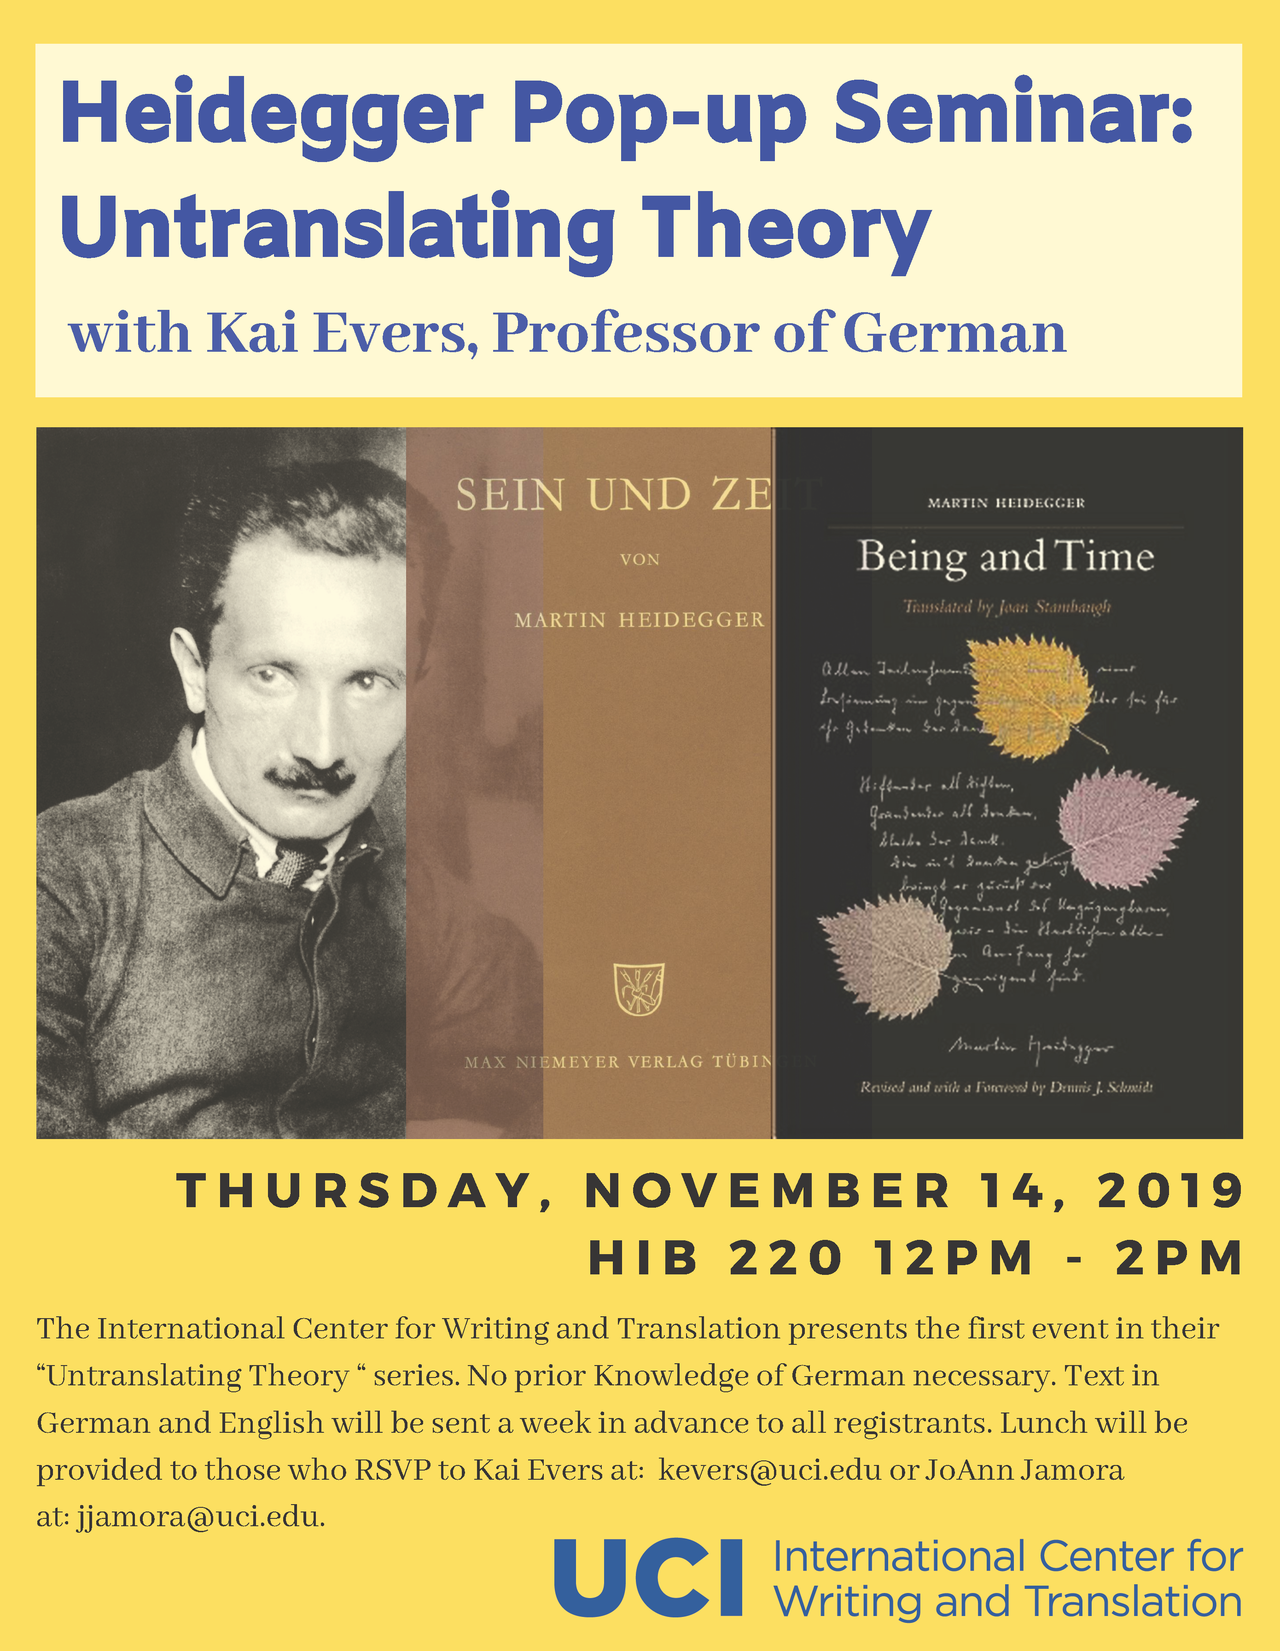 Heidegger pop-up event flyer